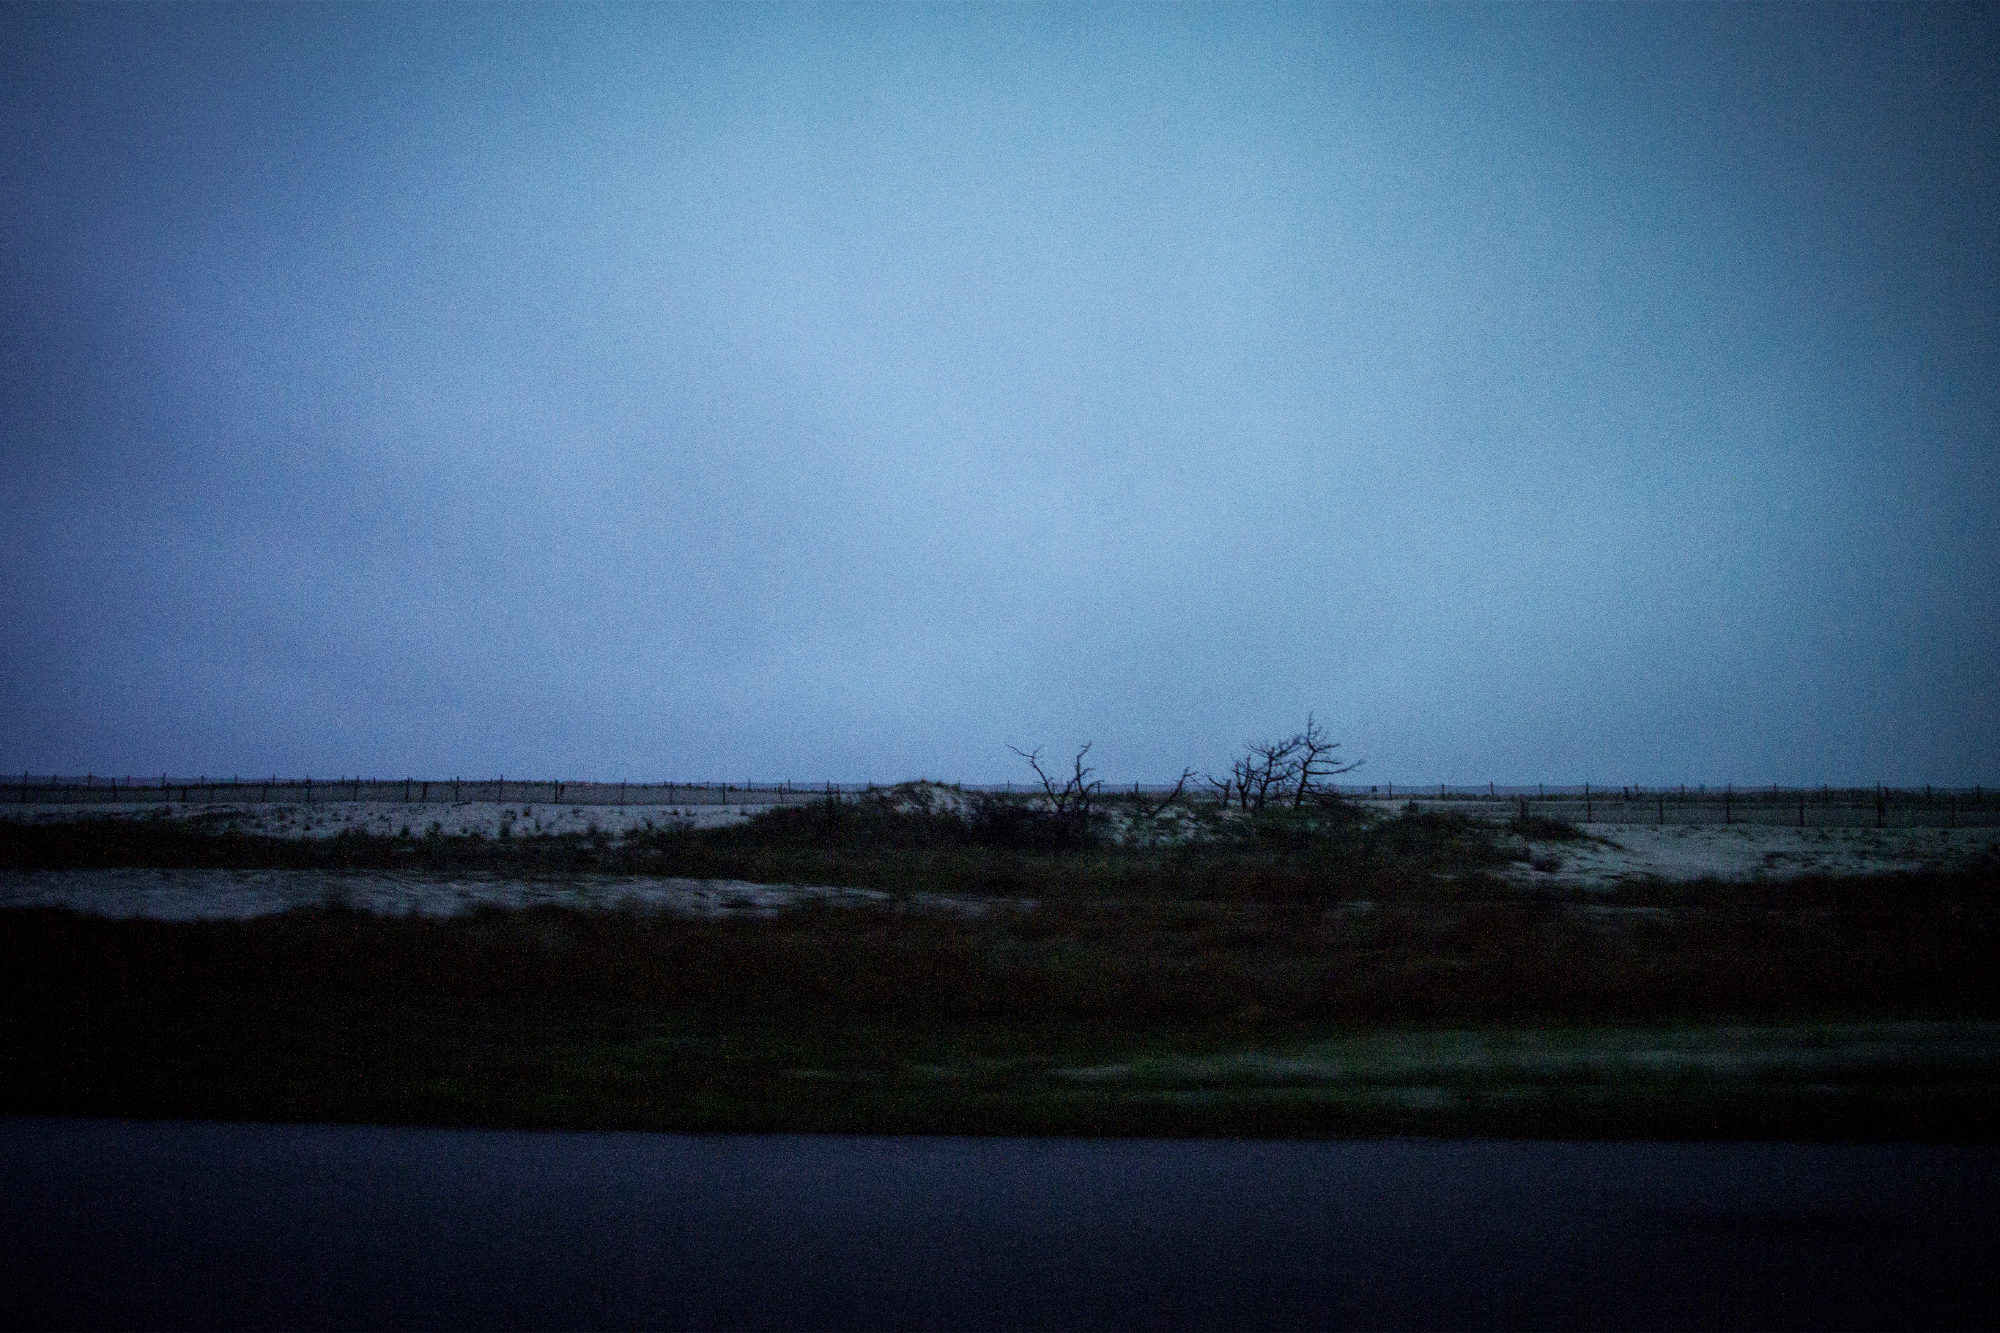 Photograph of vast open sky taken in the evening in the winter while in Maryland. Some beach can be seen.